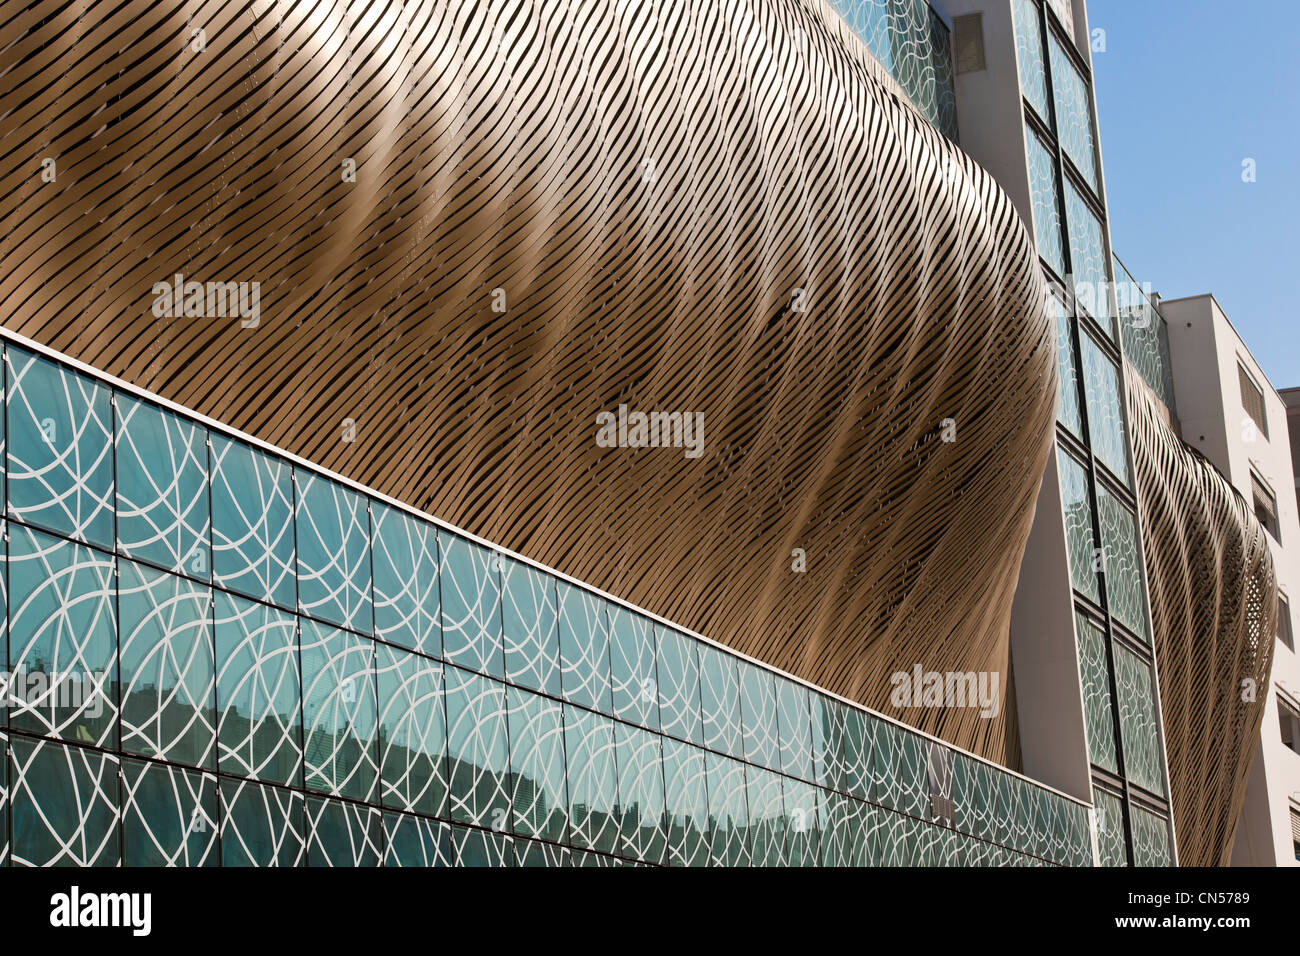 Relay France Stock Photos Images Alamy Terminal 3 Cdg Isere Grenoble The Carpark Vallier Catane Built In 2006 By